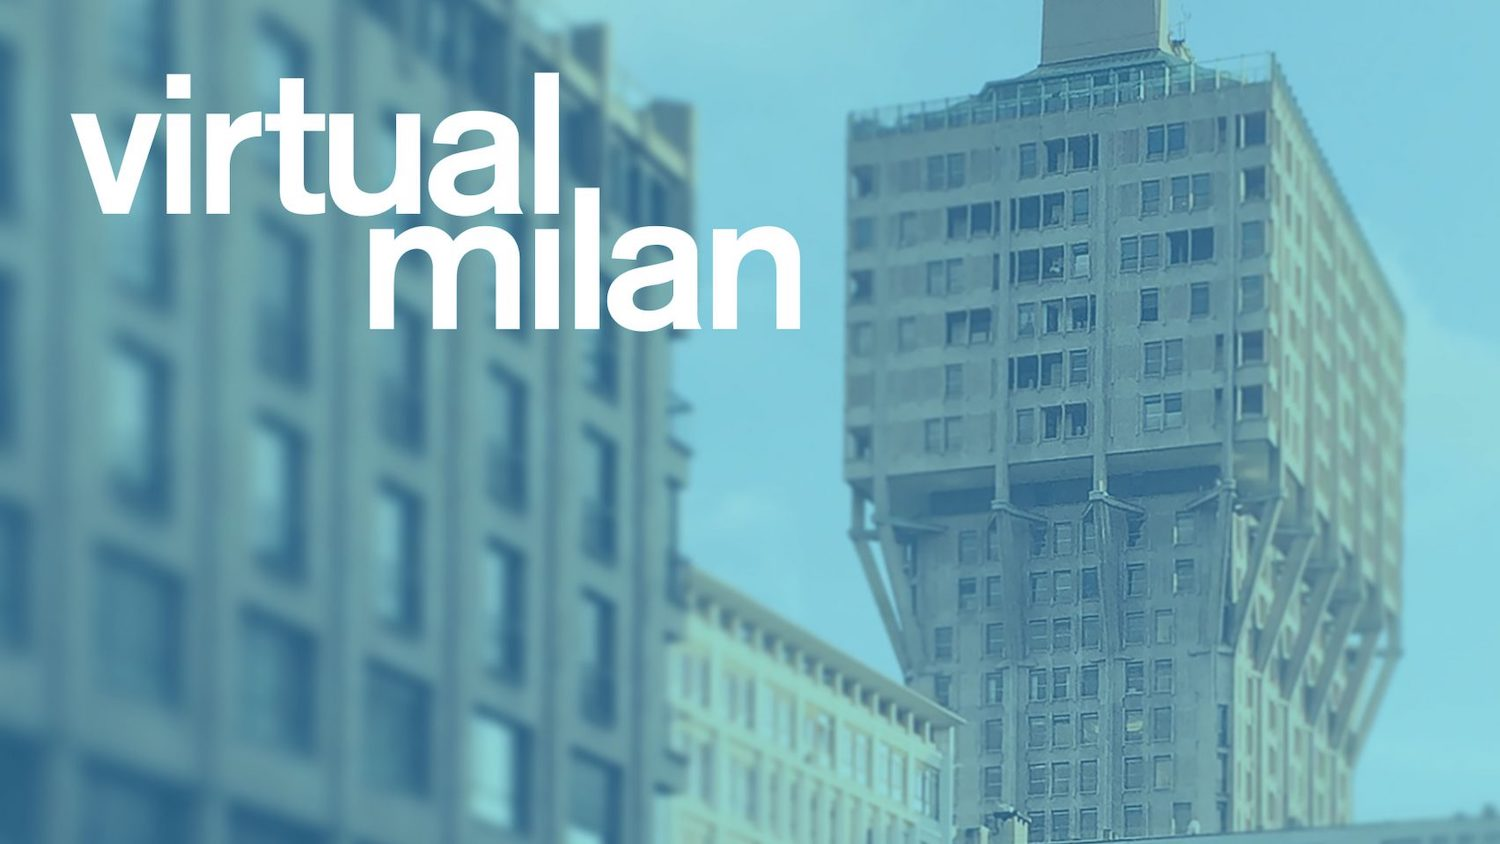 Dezeen's Virtual Milan